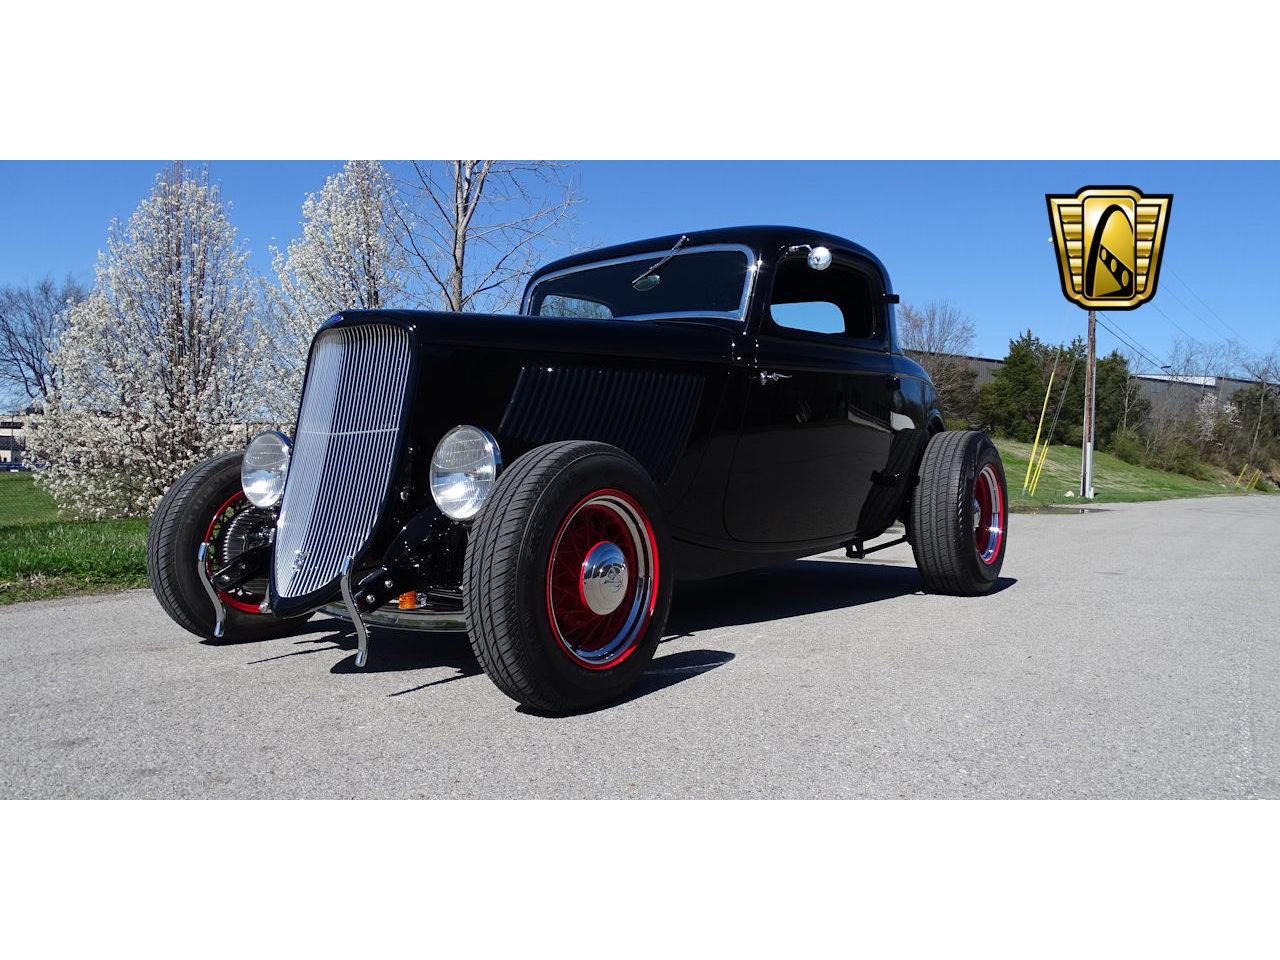 Large Picture of 1933 Ford Coupe located in Tennessee Offered by Gateway Classic Cars - Nashville - N0FP